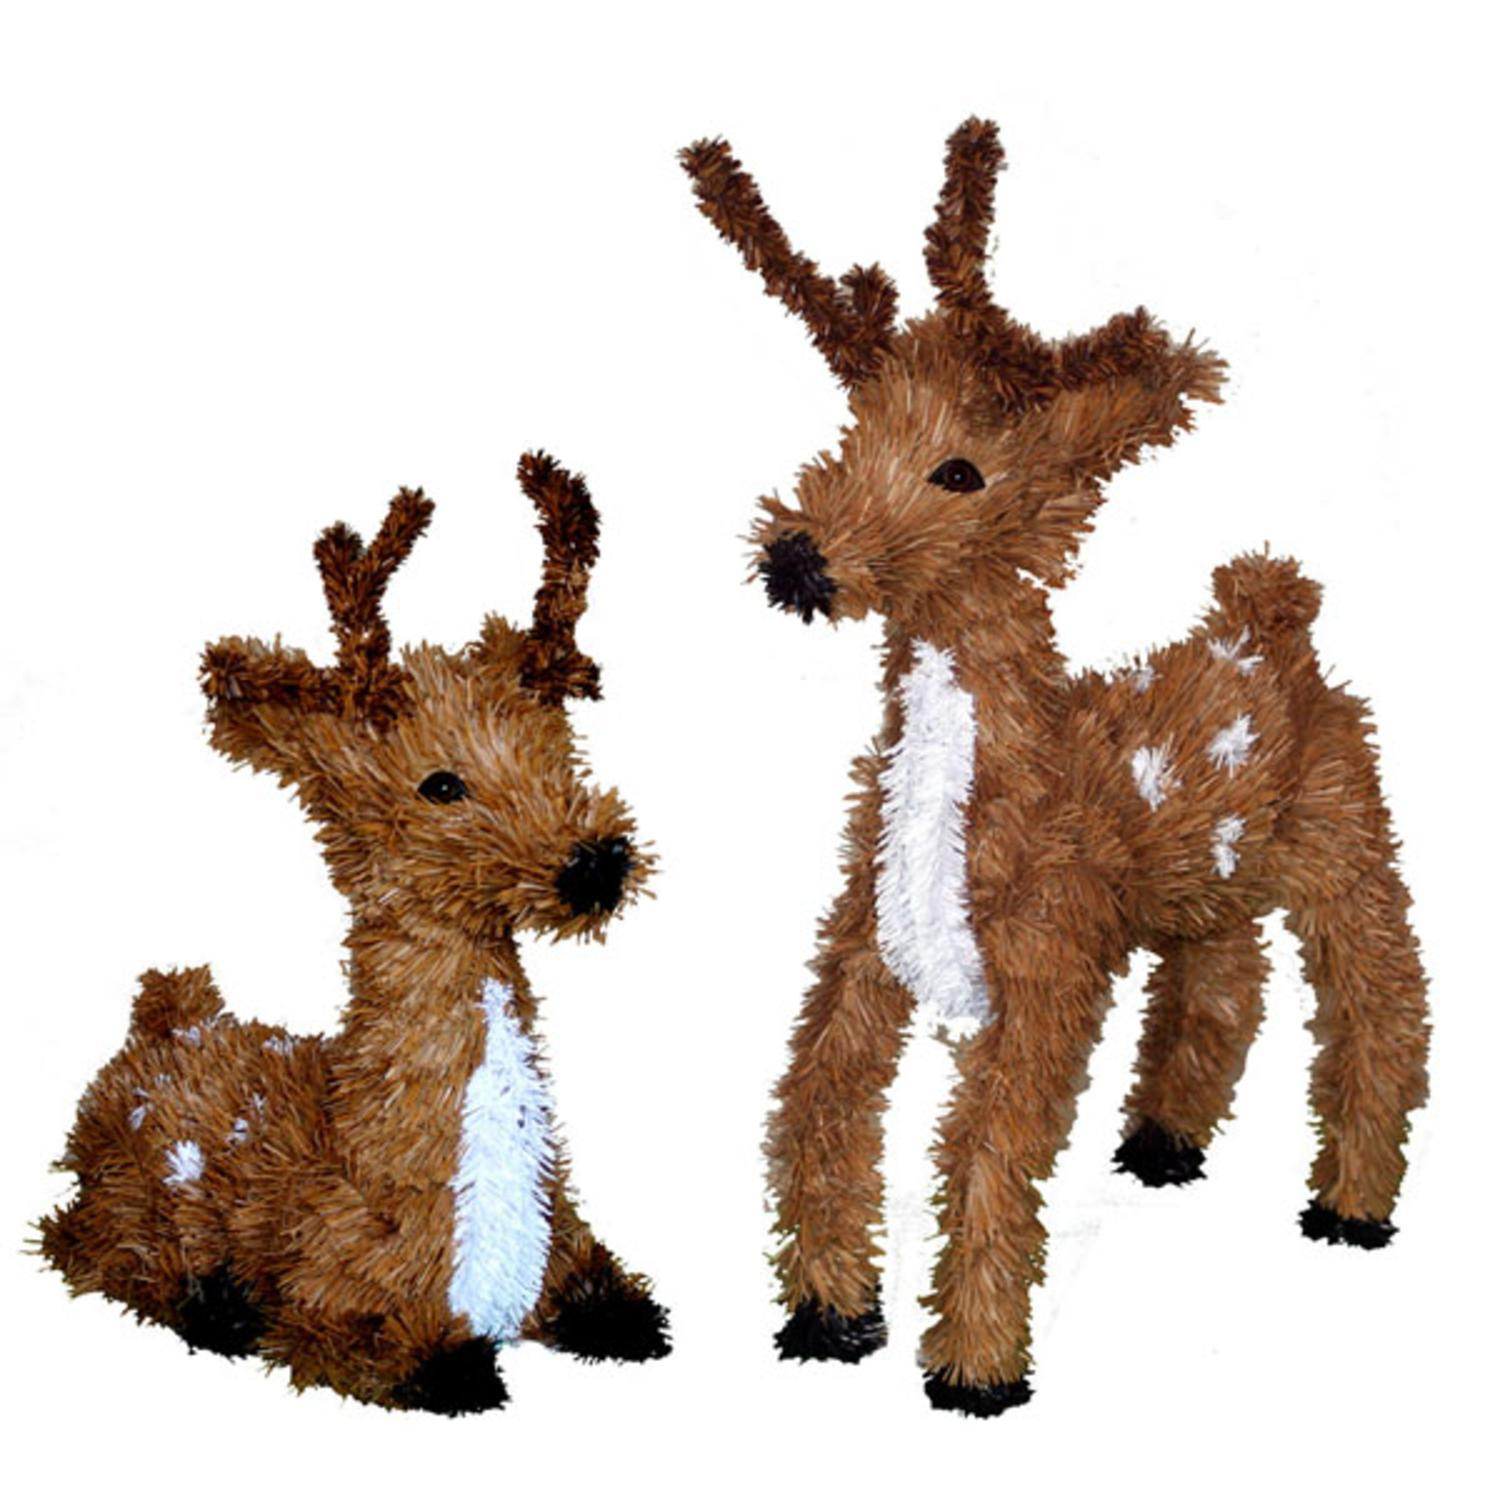 set of 2 sitting standing reindeer christmas decorations walmartcom - Christmas Reindeer Decorations